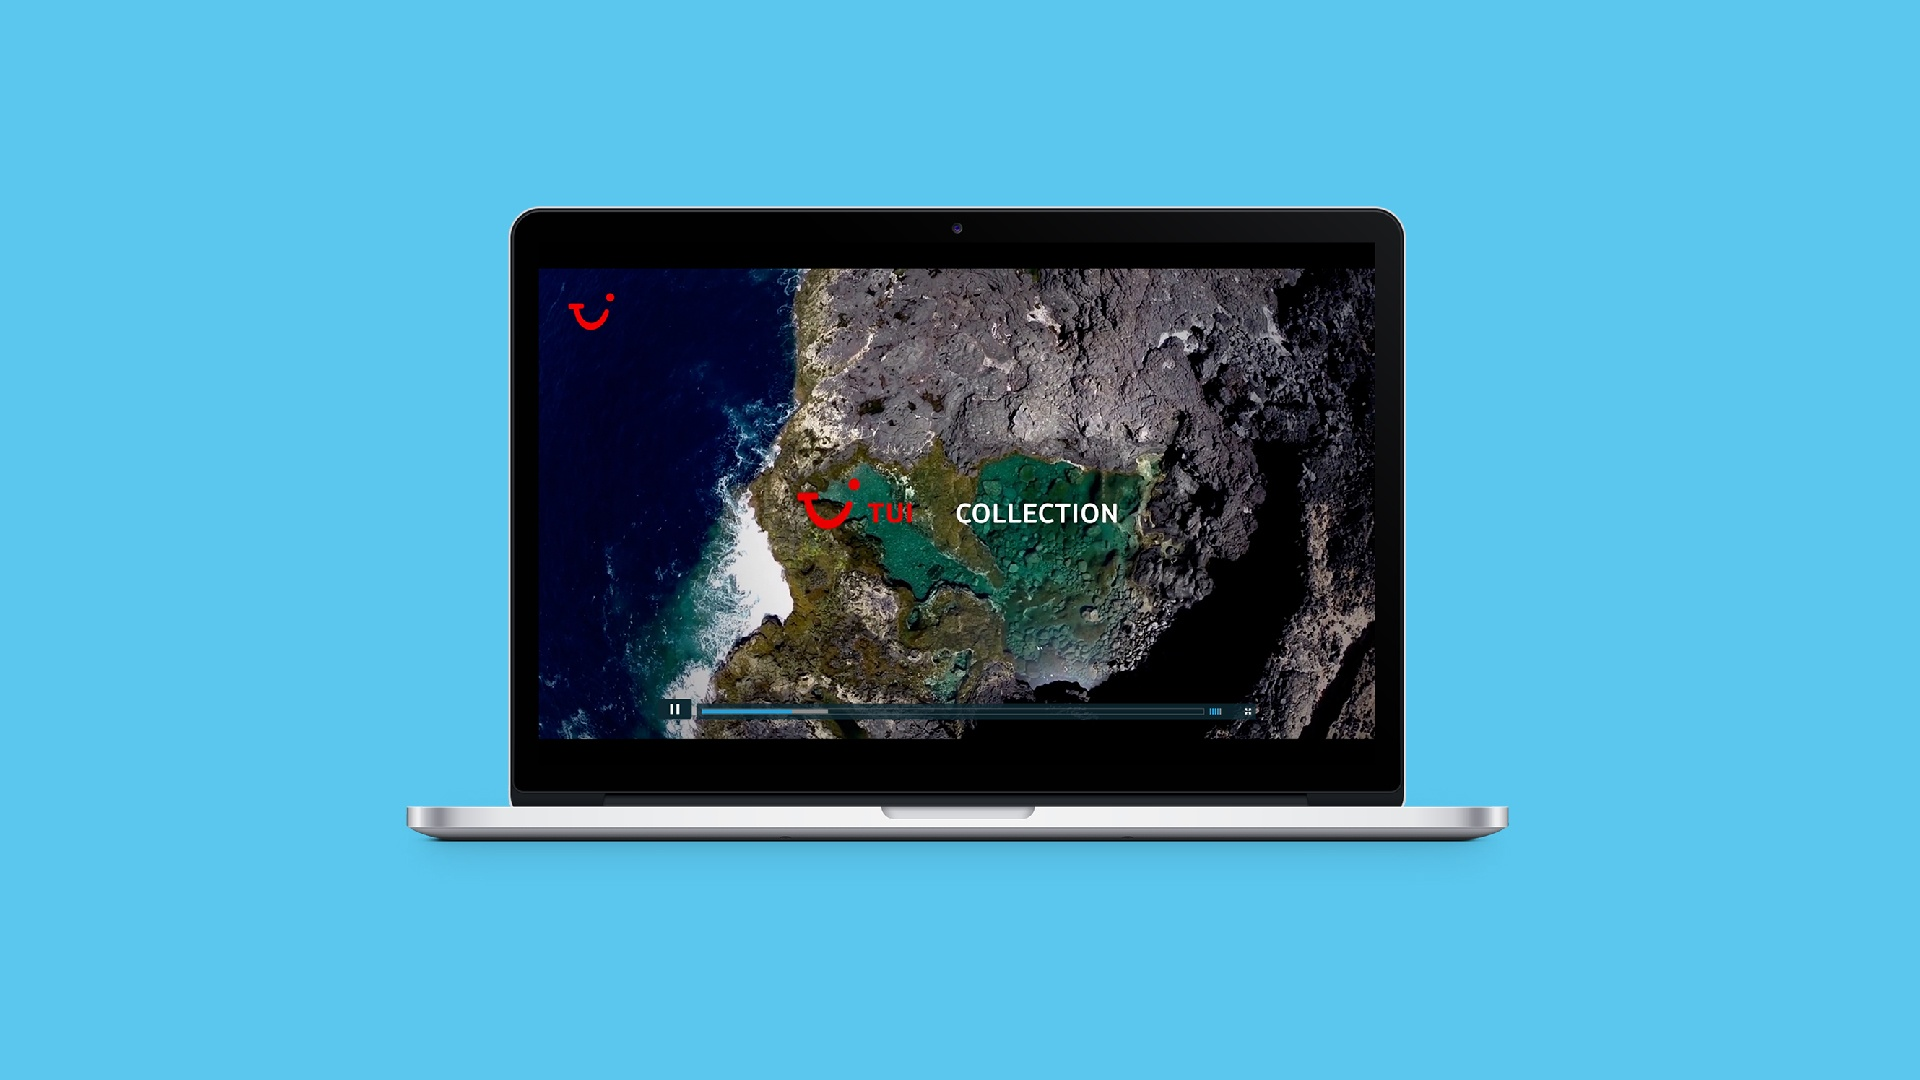 TUI - Caso de éxito de Video Marketing